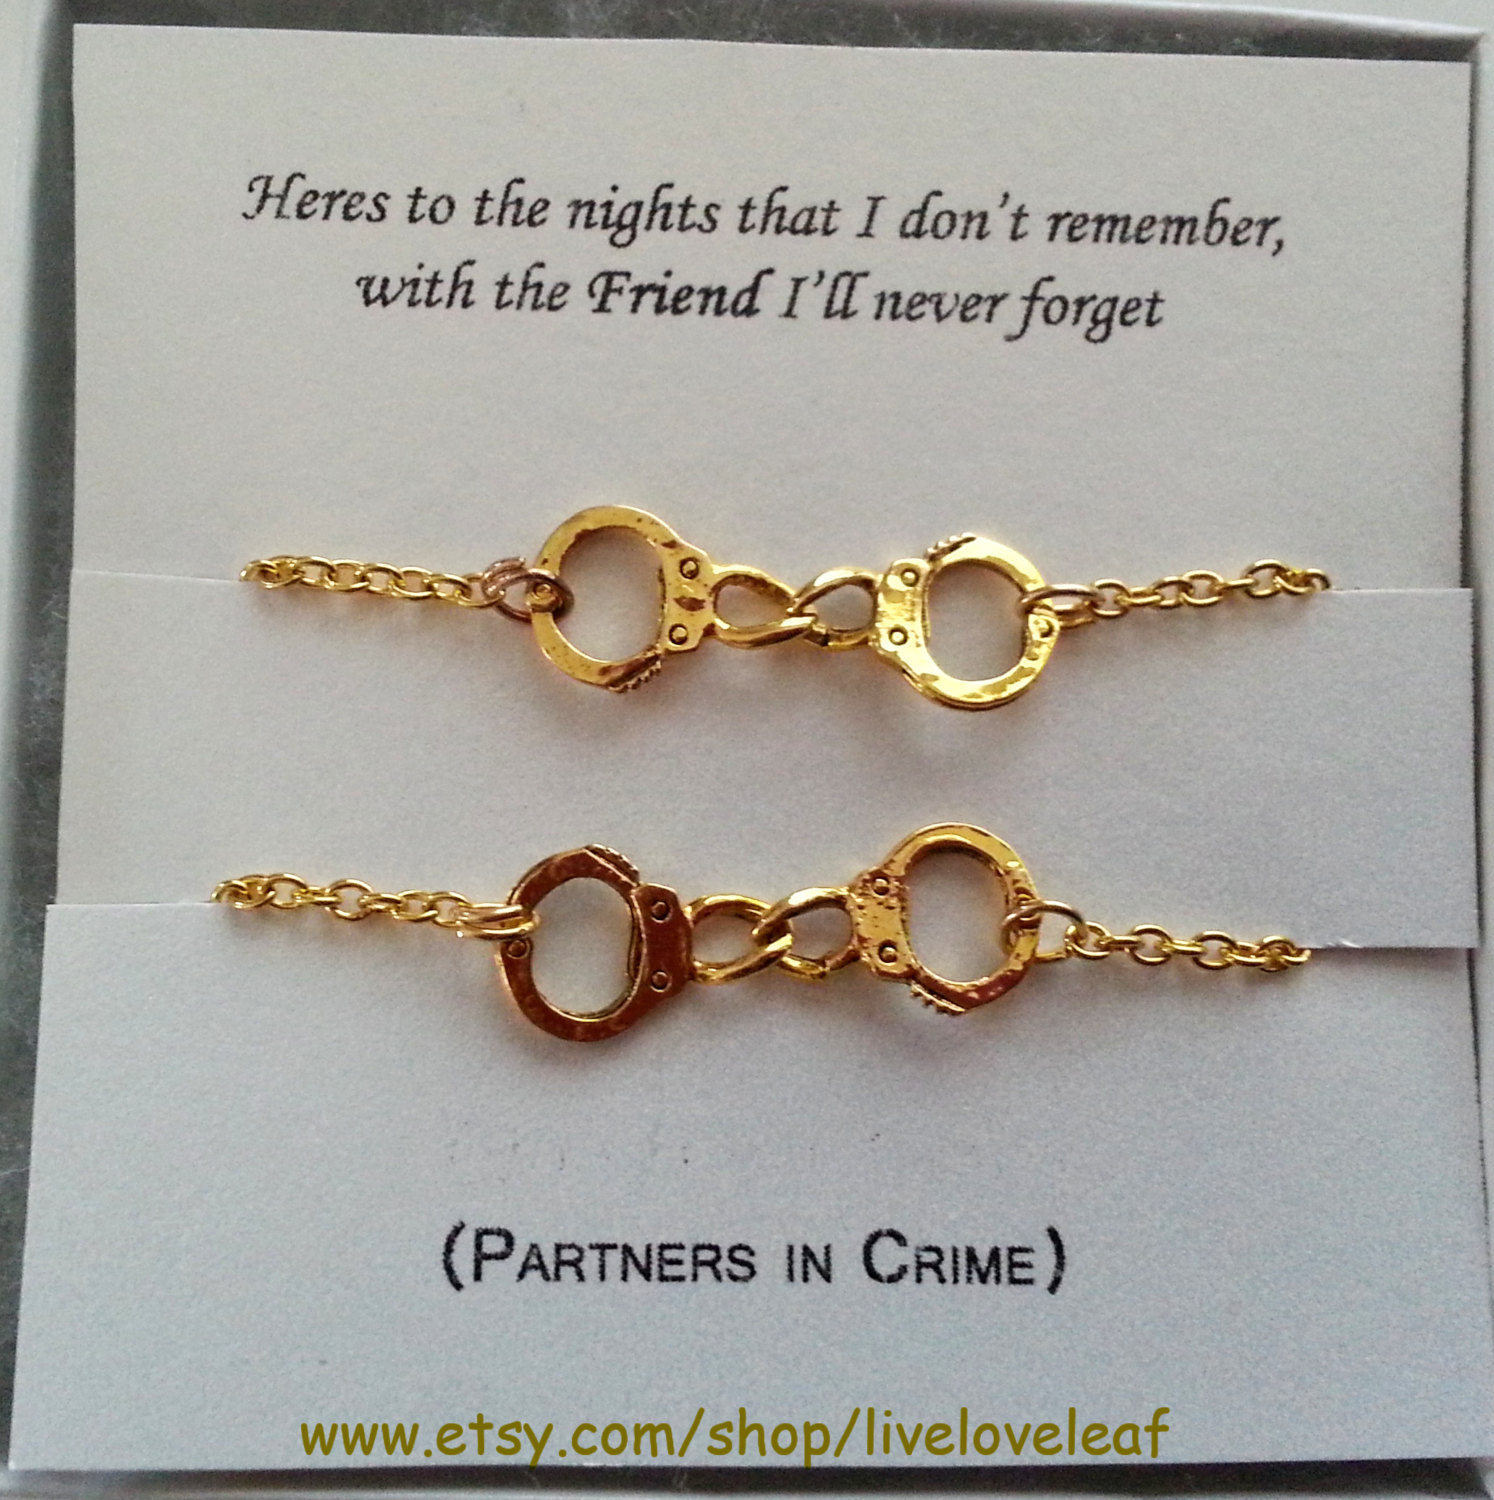 partners in crime matching handcuffs bracelets gold